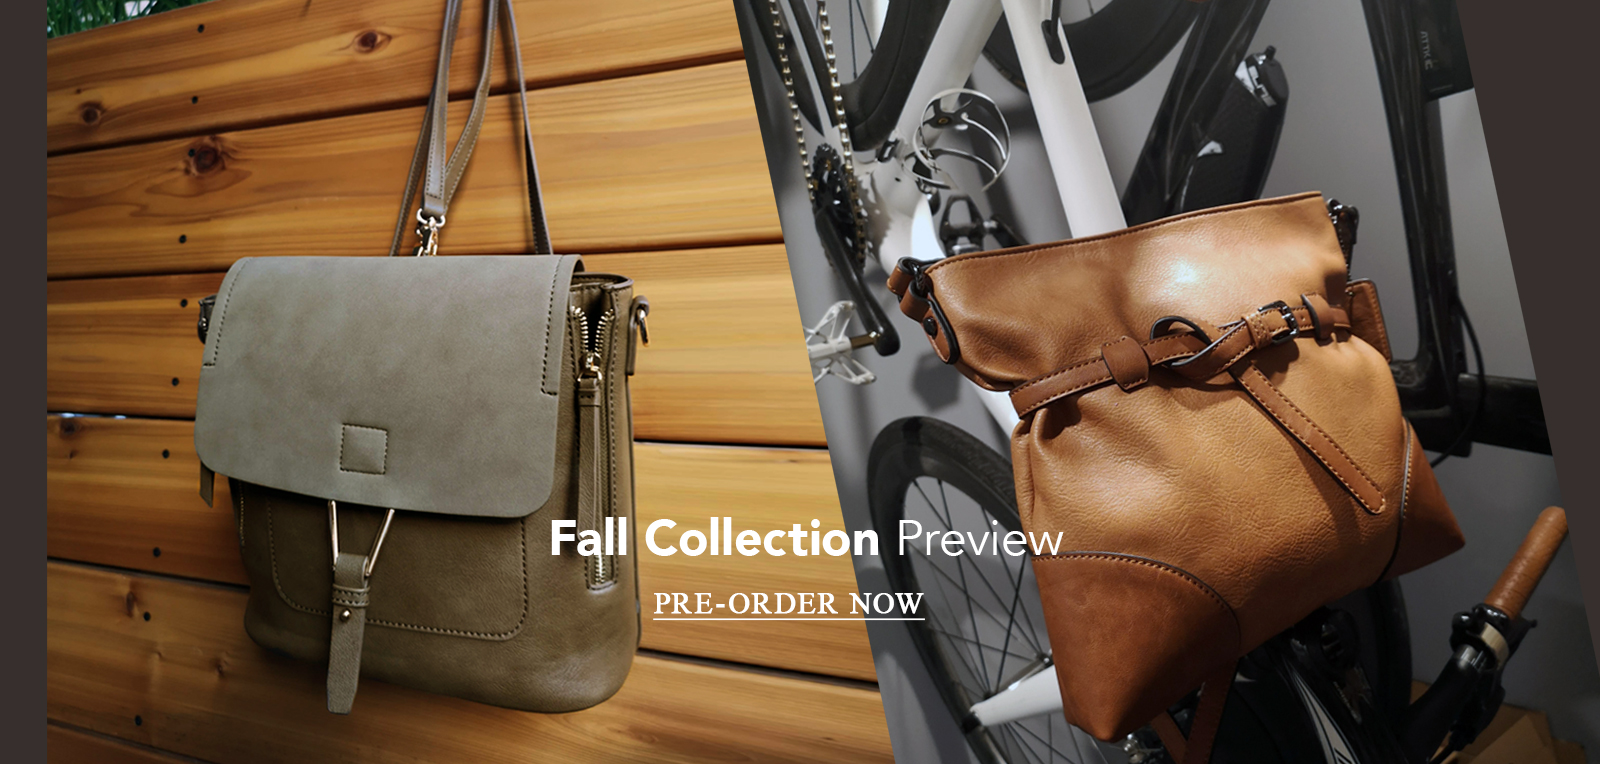 Fall Collection Preview